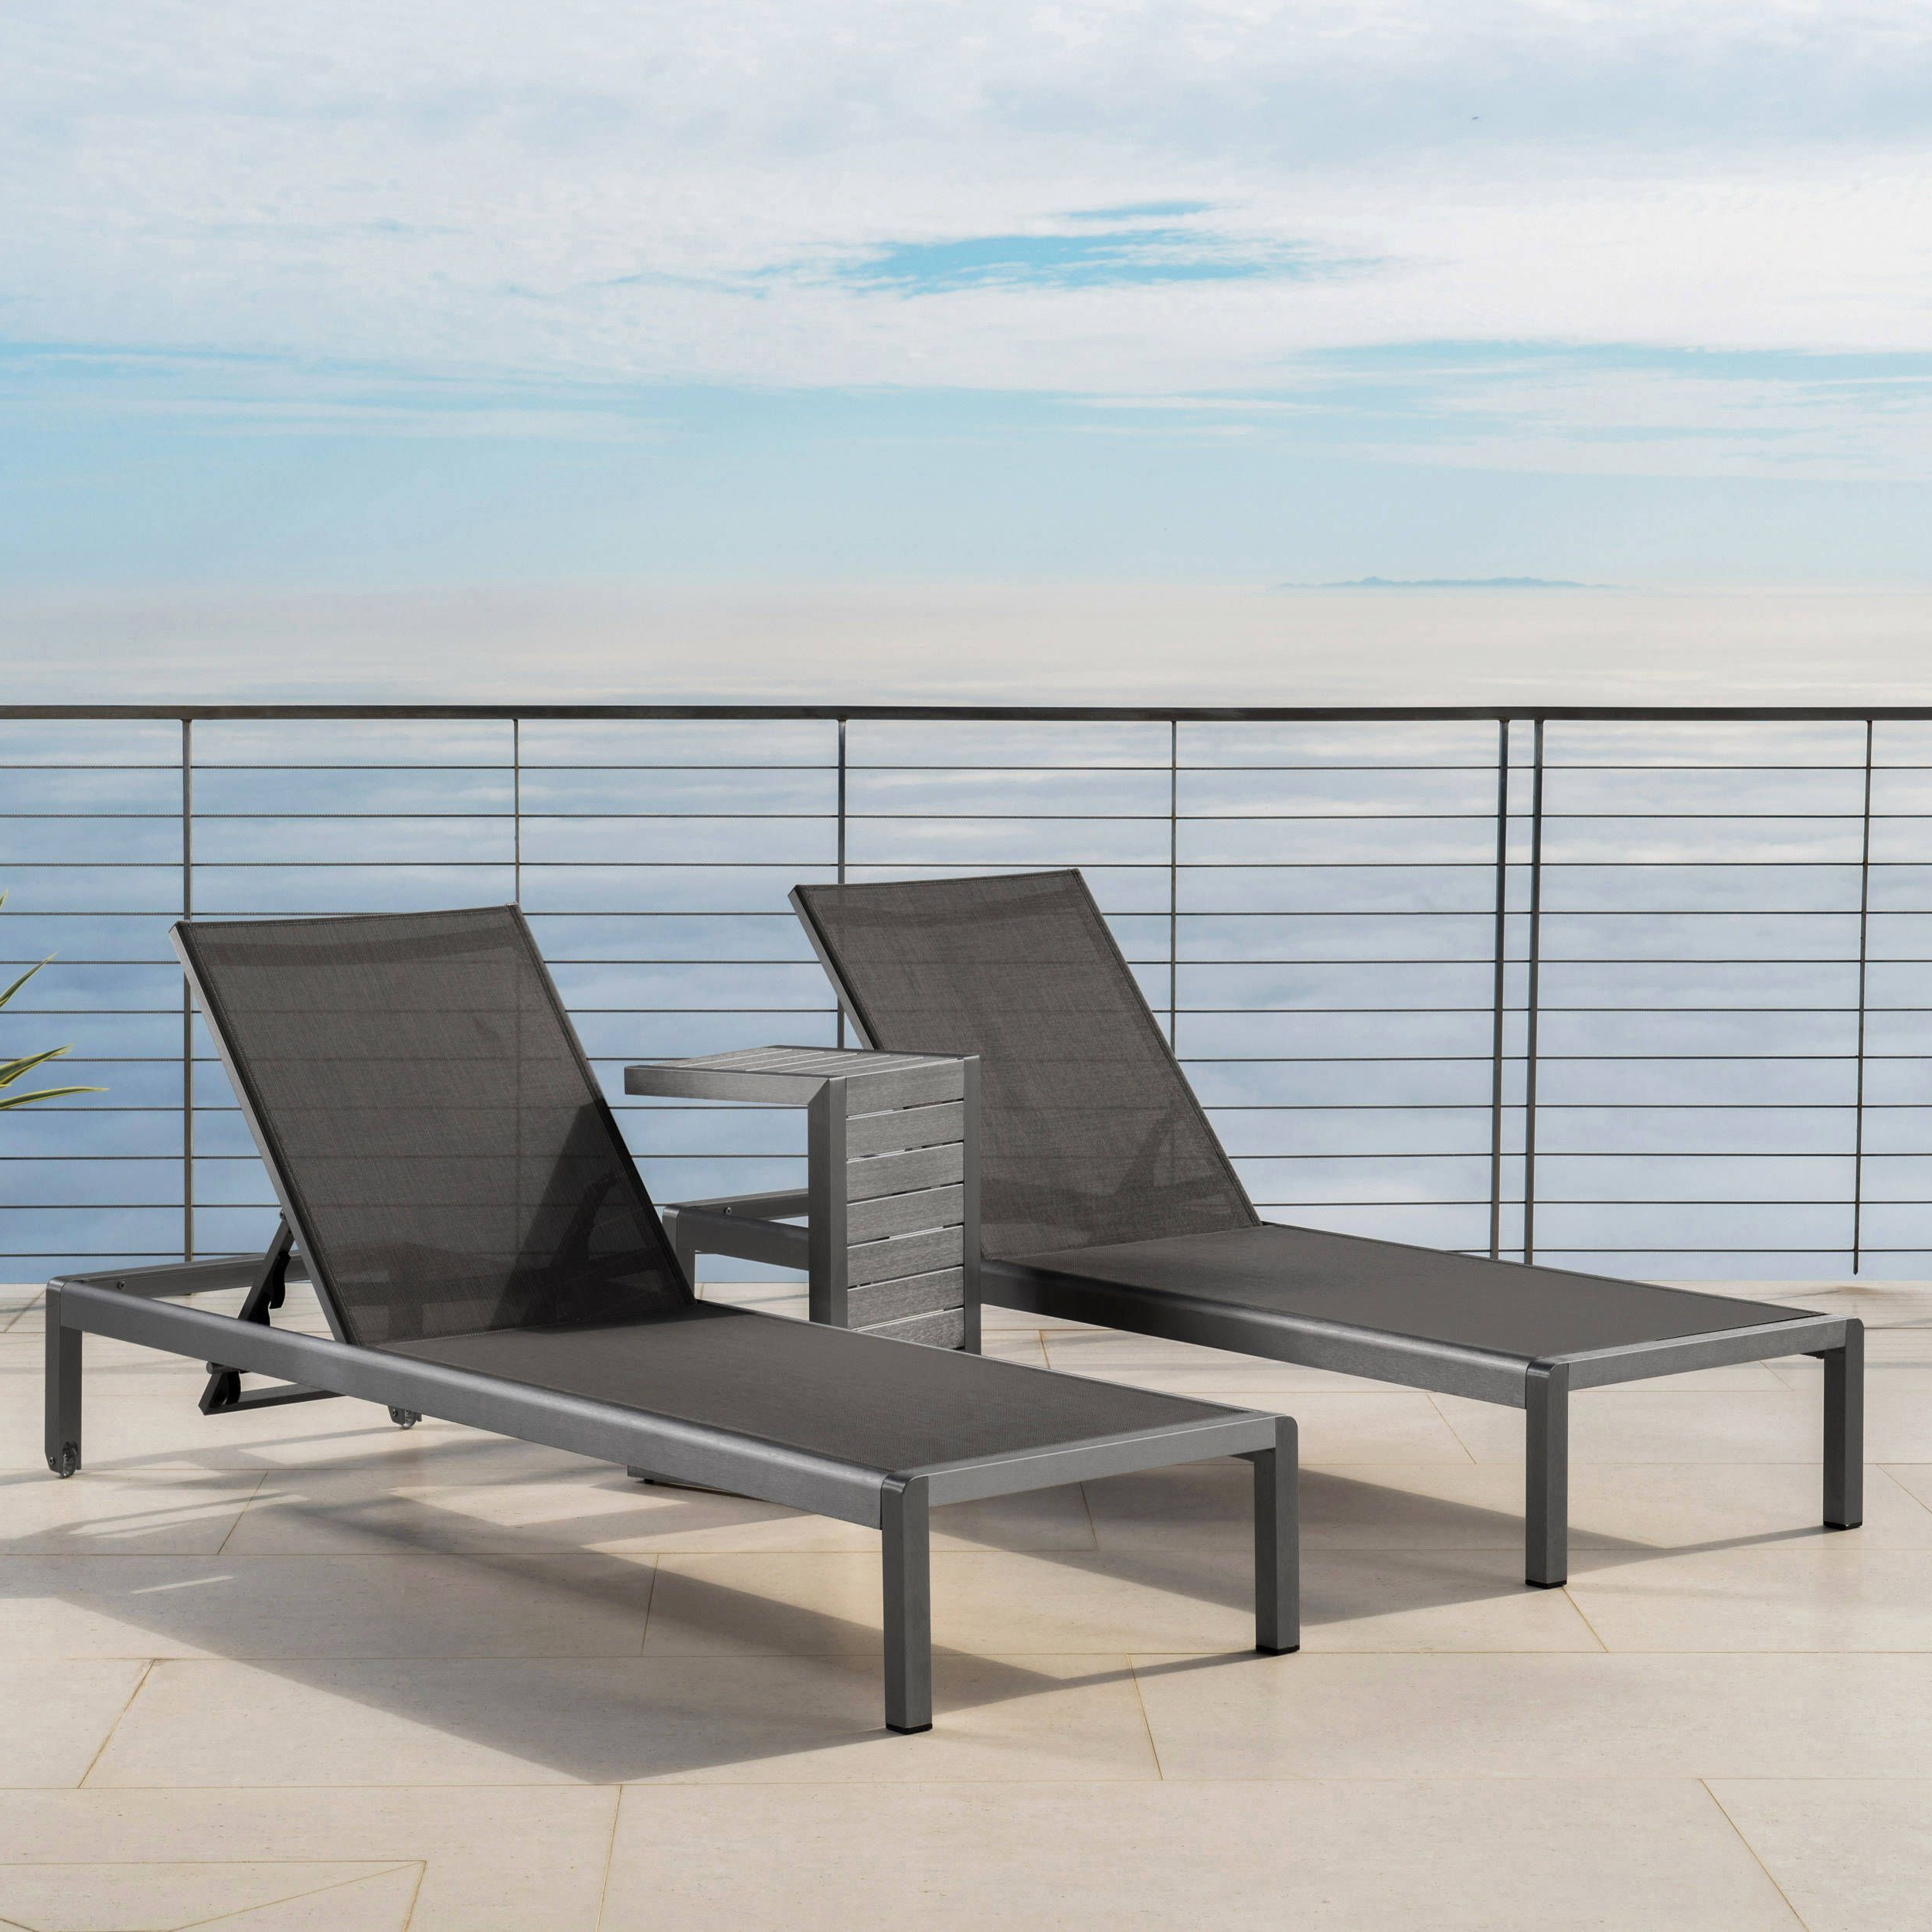 Preferred Cape Coral Outdoor Aluminum 3 Piece Chaise Lounge Set For Cape Coral Outdoor Aluminum Mesh Chaise Lounges (View 23 of 25)